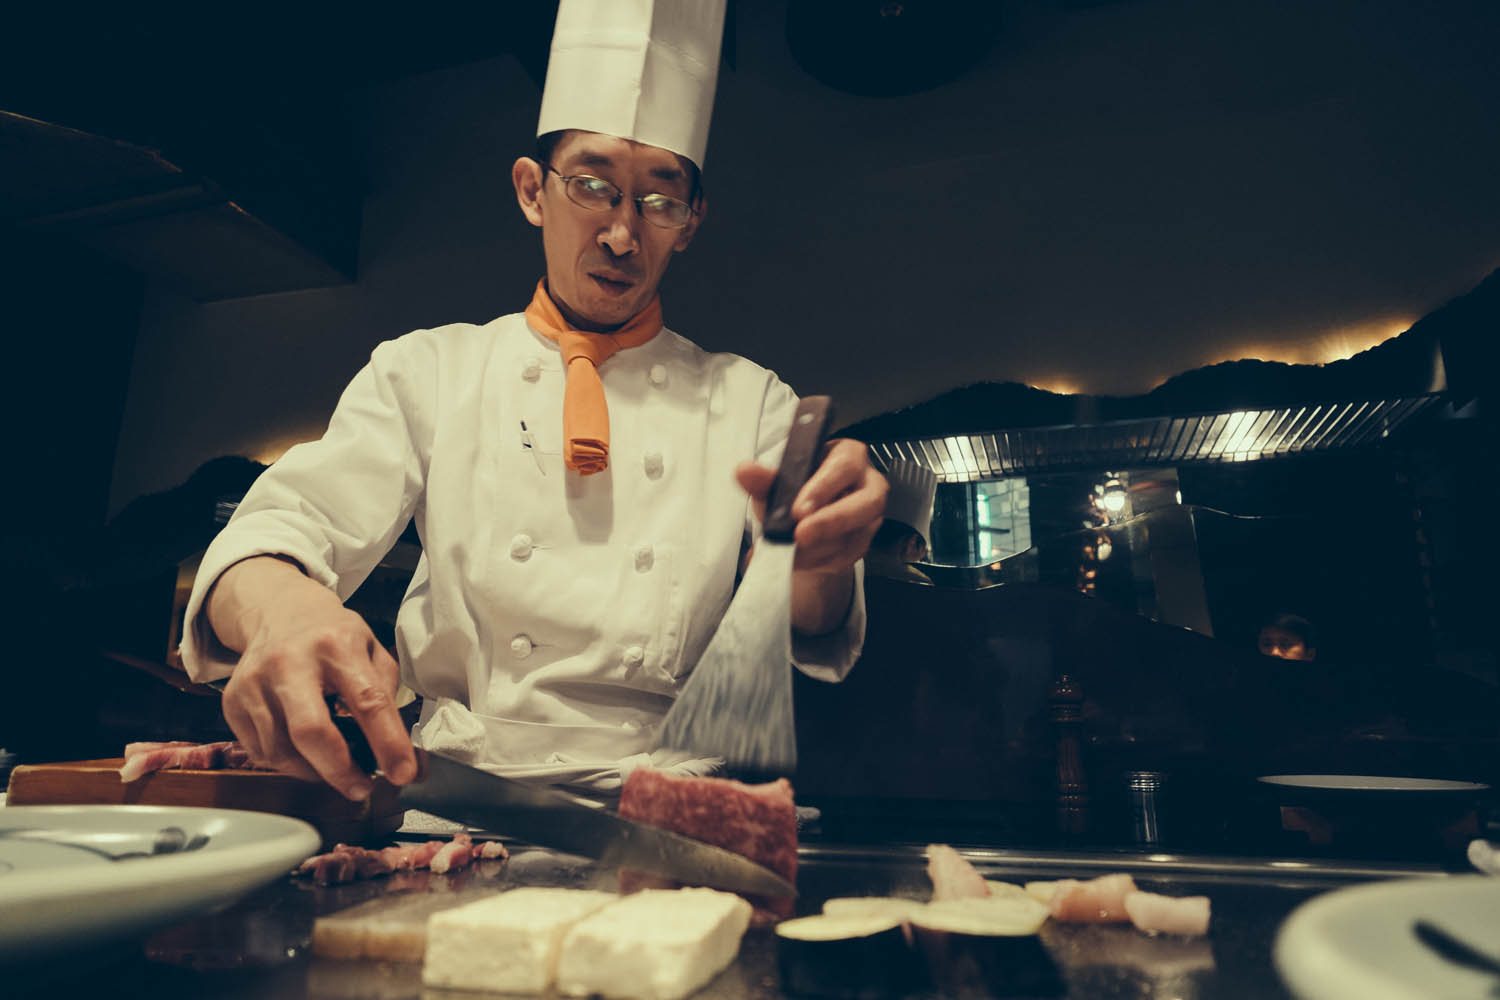 Chef searing and presenting the mouth watering Kobe beef, Kobe.